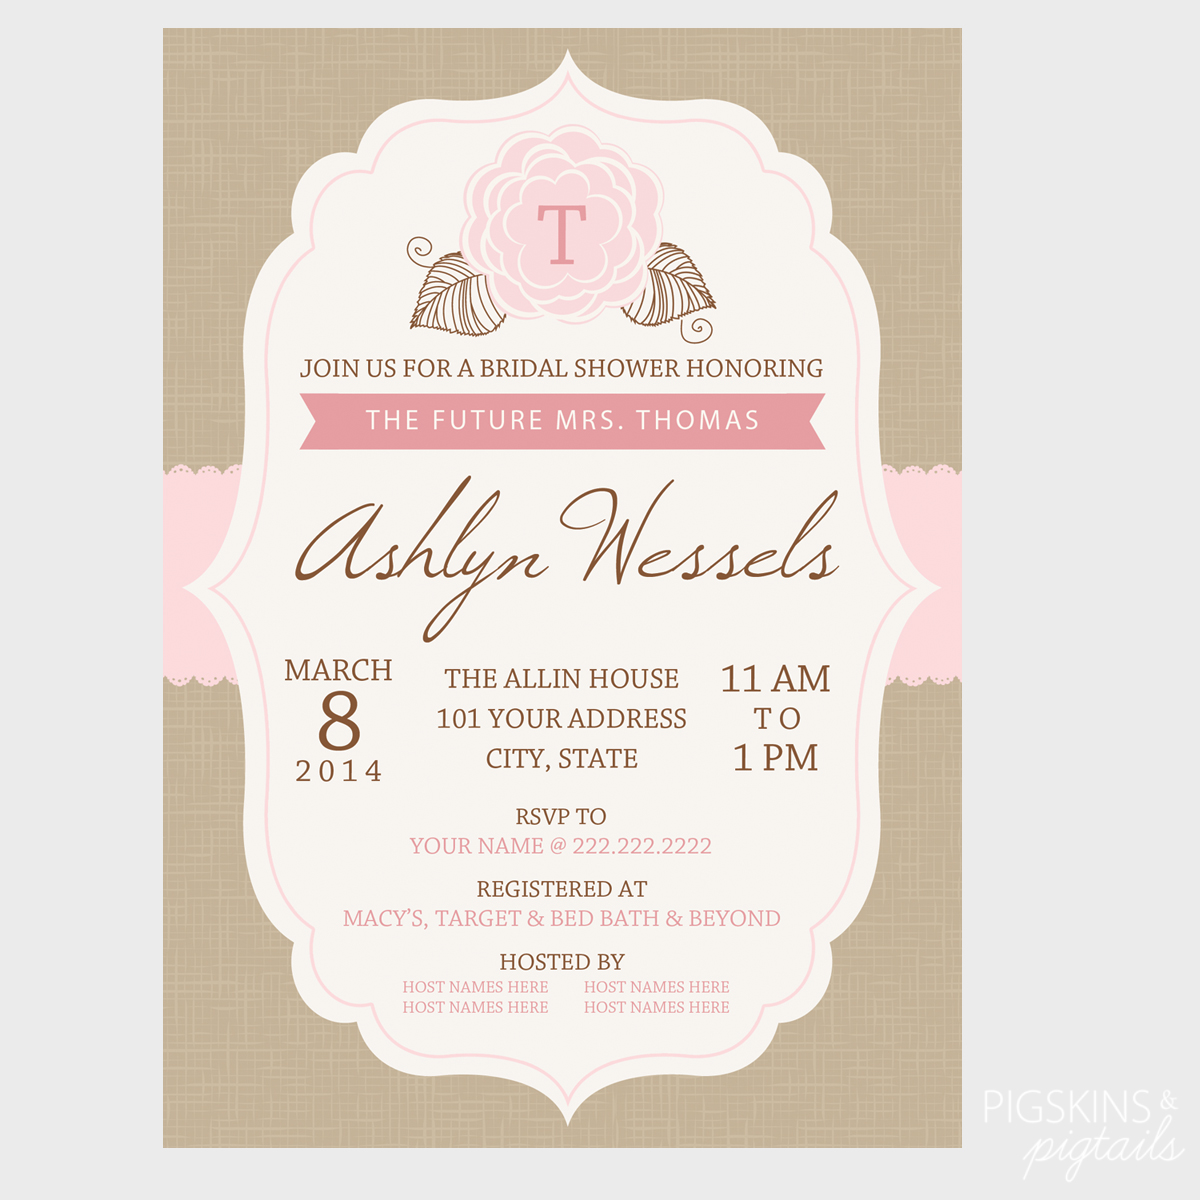 Bridal shower invitation pigskins pigtails for Invitations for wedding shower